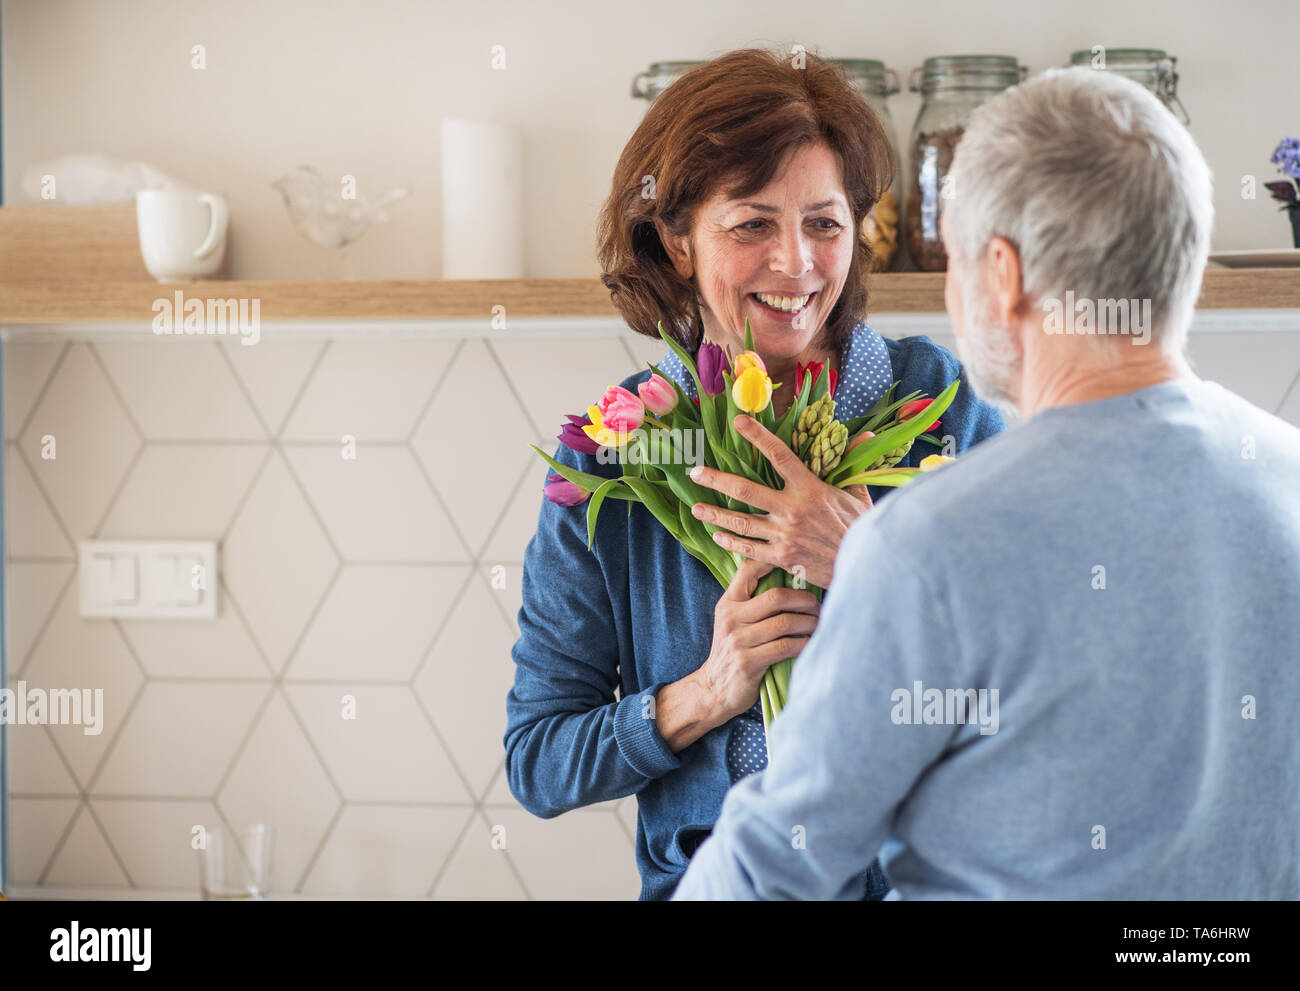 A senior couple in love indoors at home, man giving flowers to woman. - Stock Image